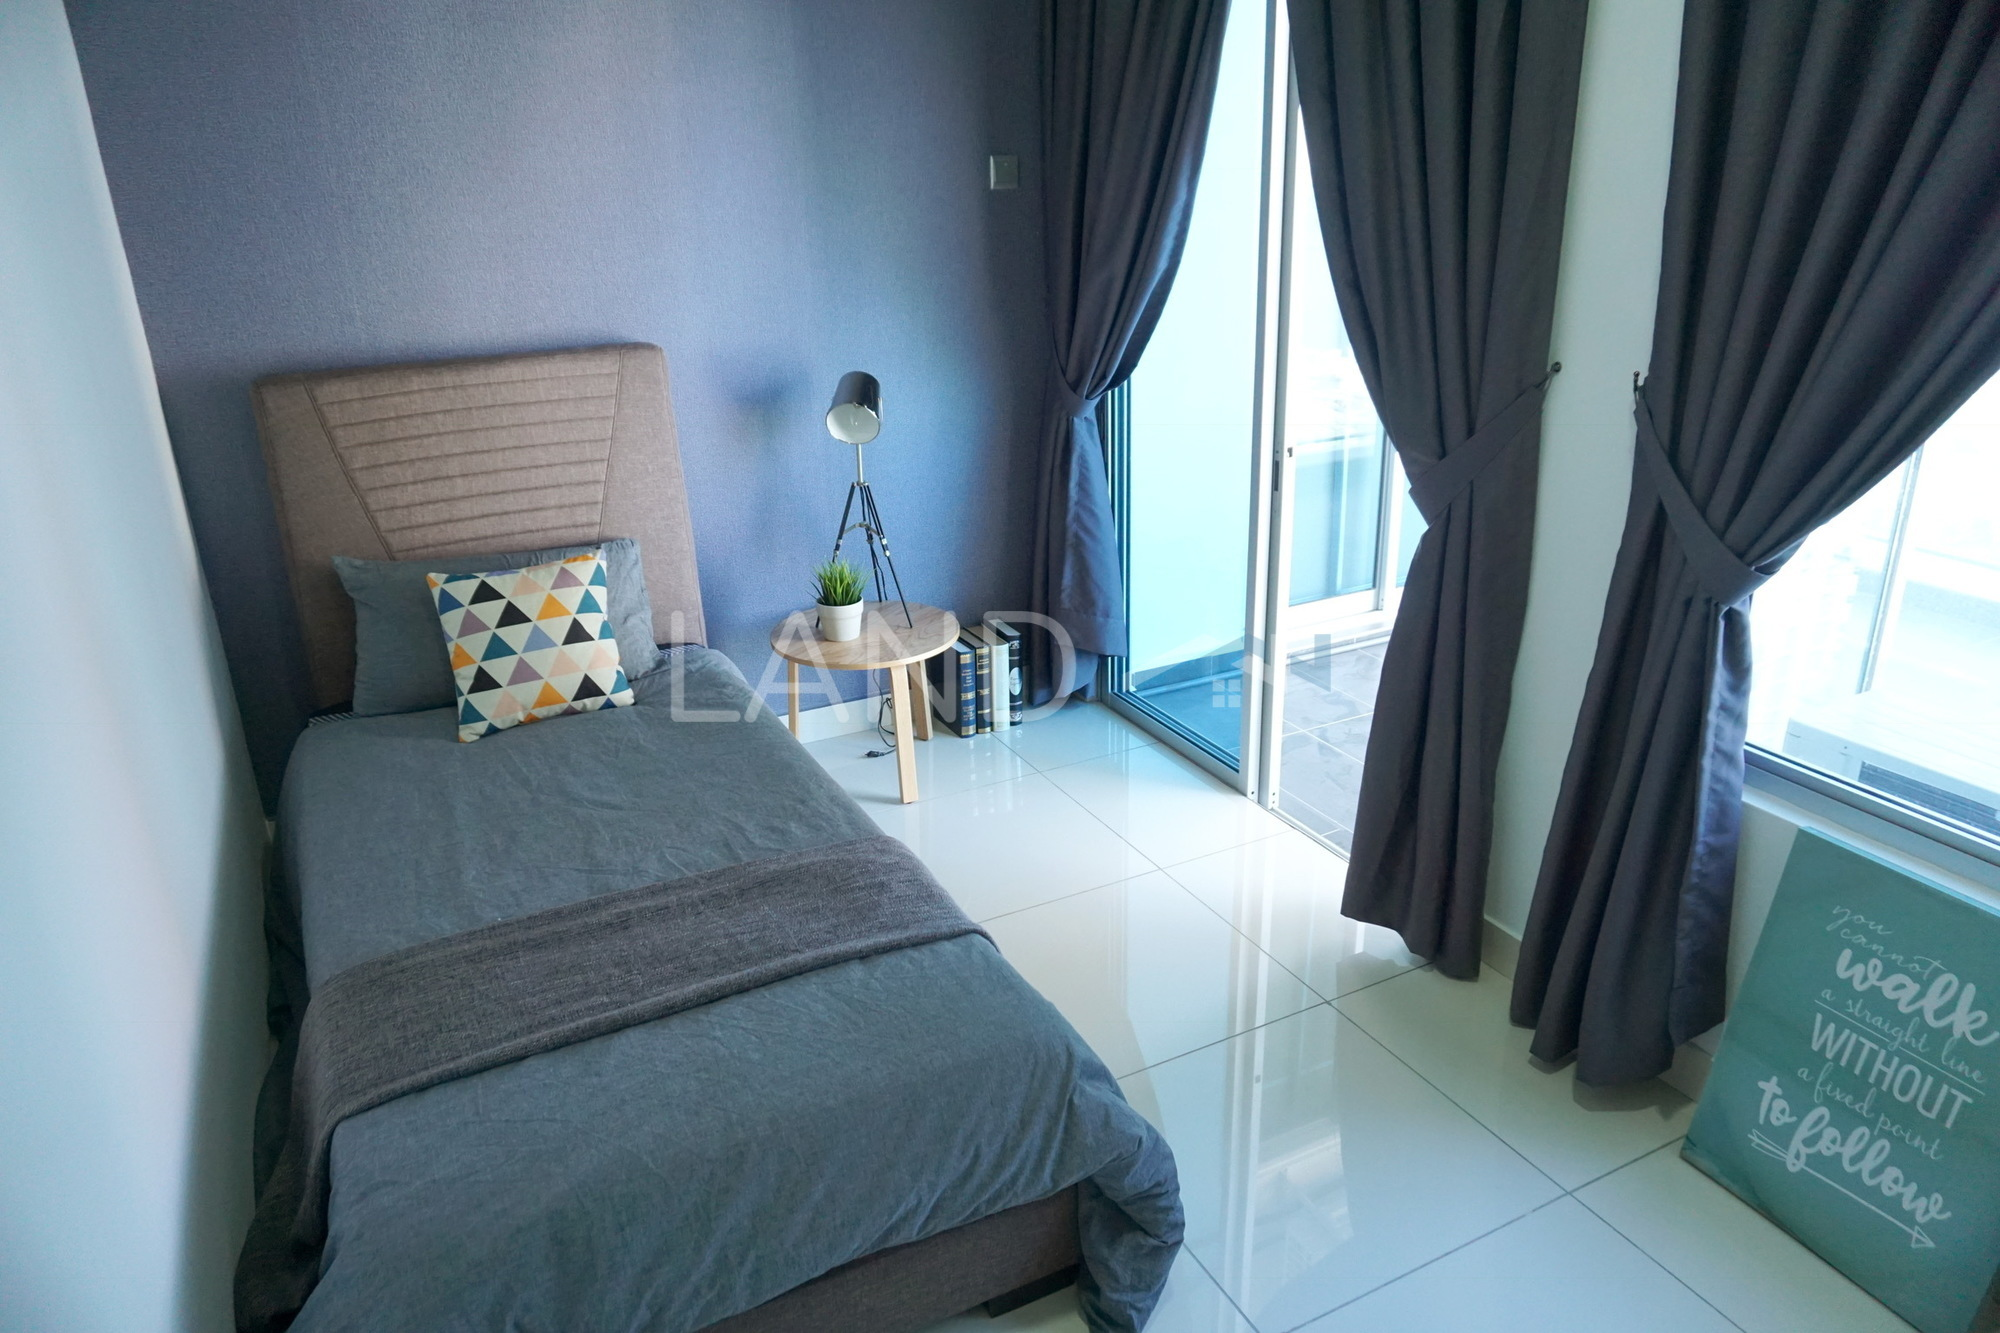 Fully Furnished Room In Apartment For Rent At Johor Malaysia Land